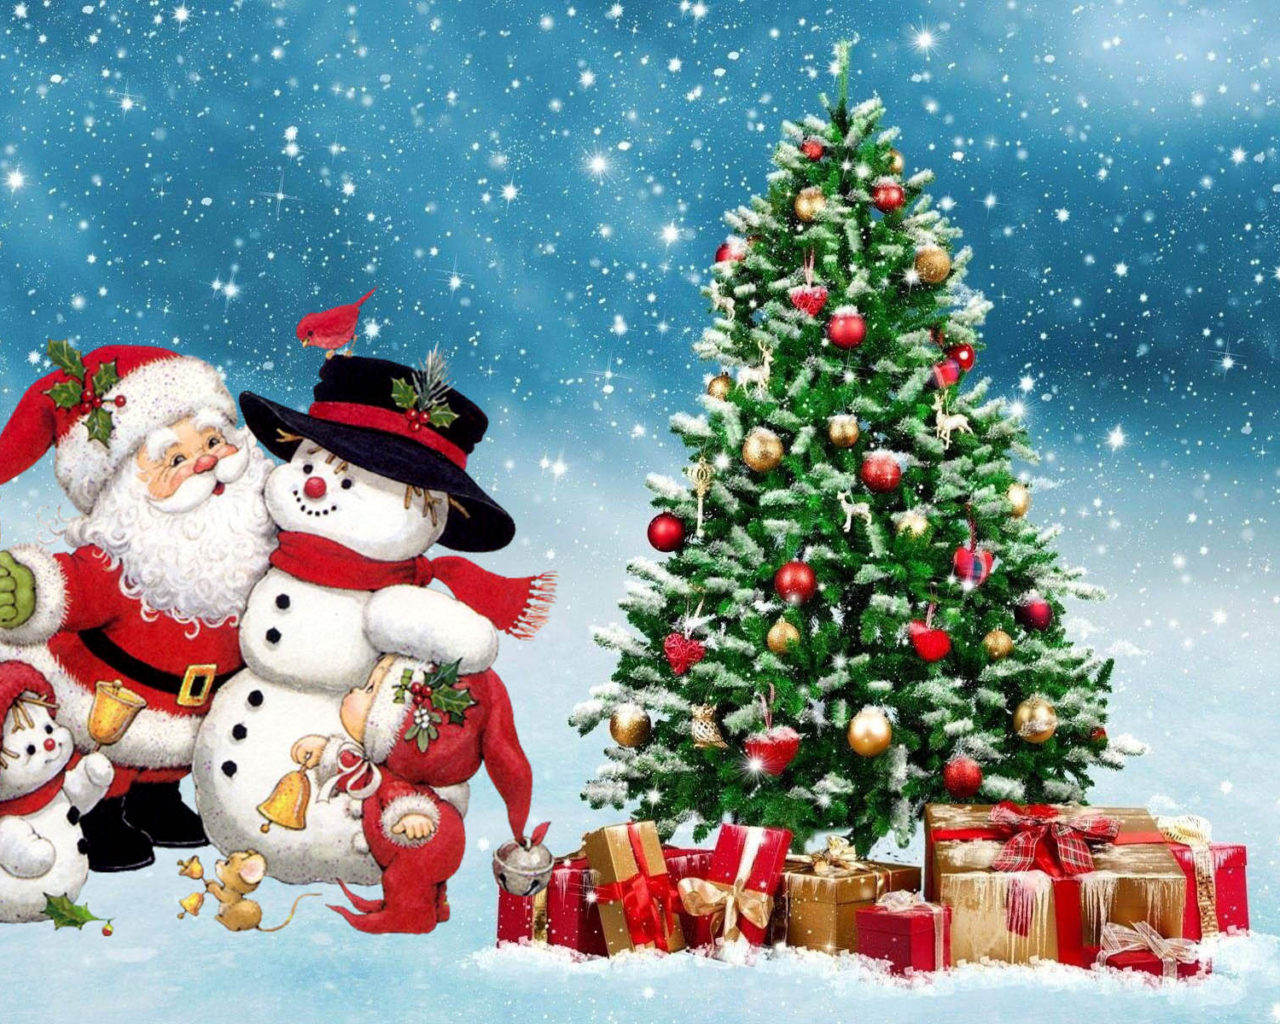 Love Quotes Wallpapers For Free Download Merry Christmas Santa Snowman Winter Christmas Tree